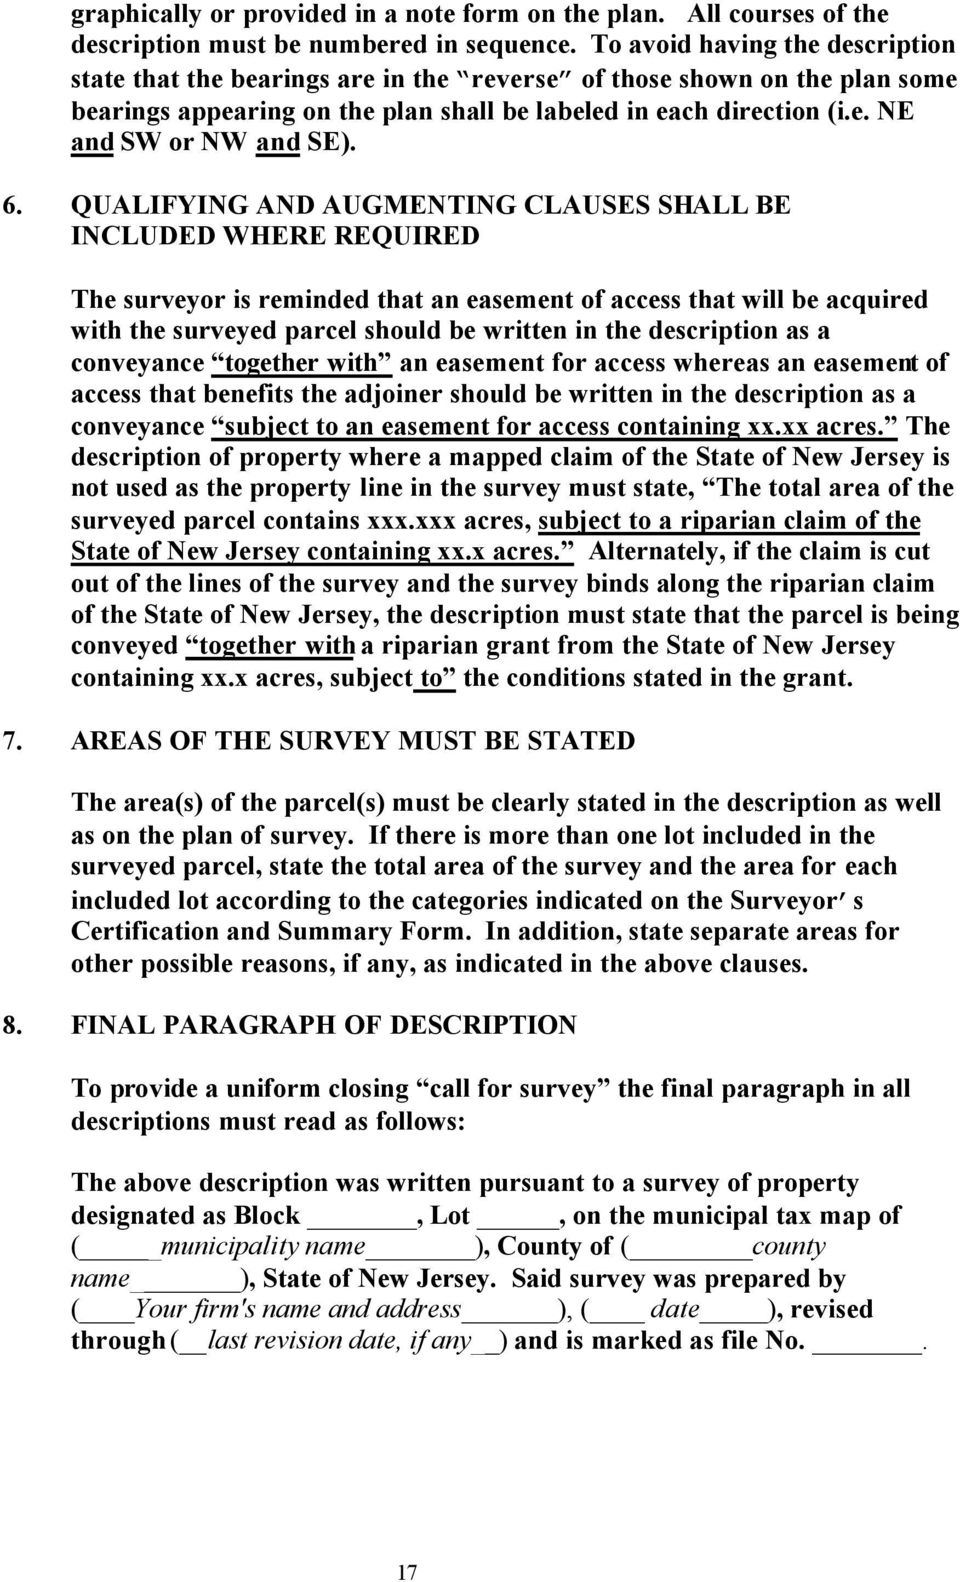 6. QUALIFYING AND AUGMENTING CLAUSES SHALL BE INCLUDED WHERE REQUIRED The surveyor is reminded that an easement of access that will be acquired with the surveyed parcel should be written in the